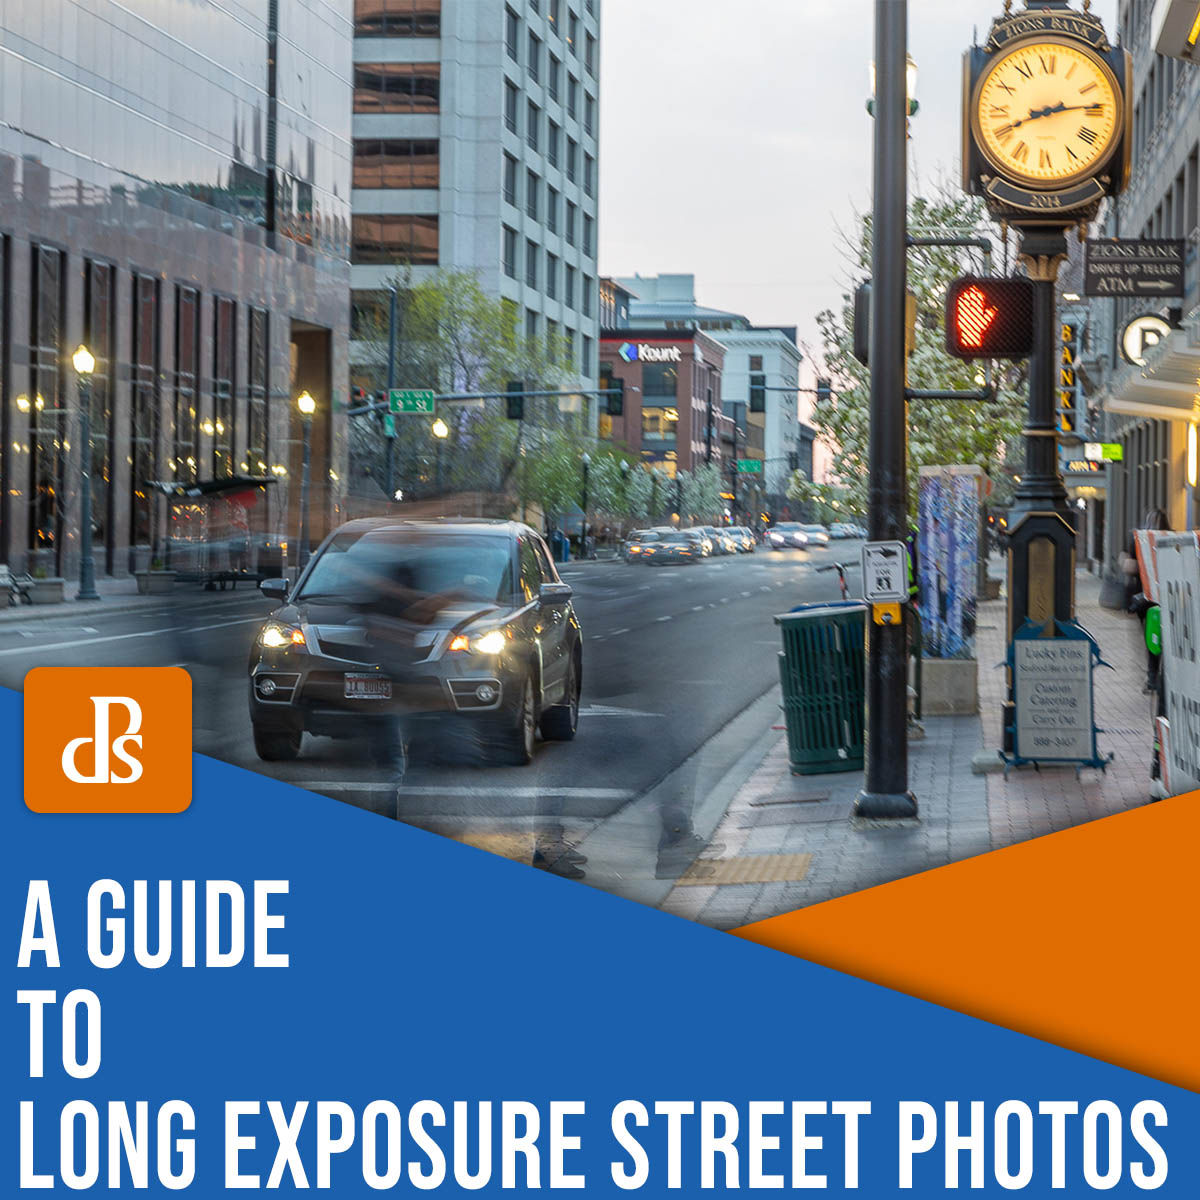 a guide to long exposure street photos